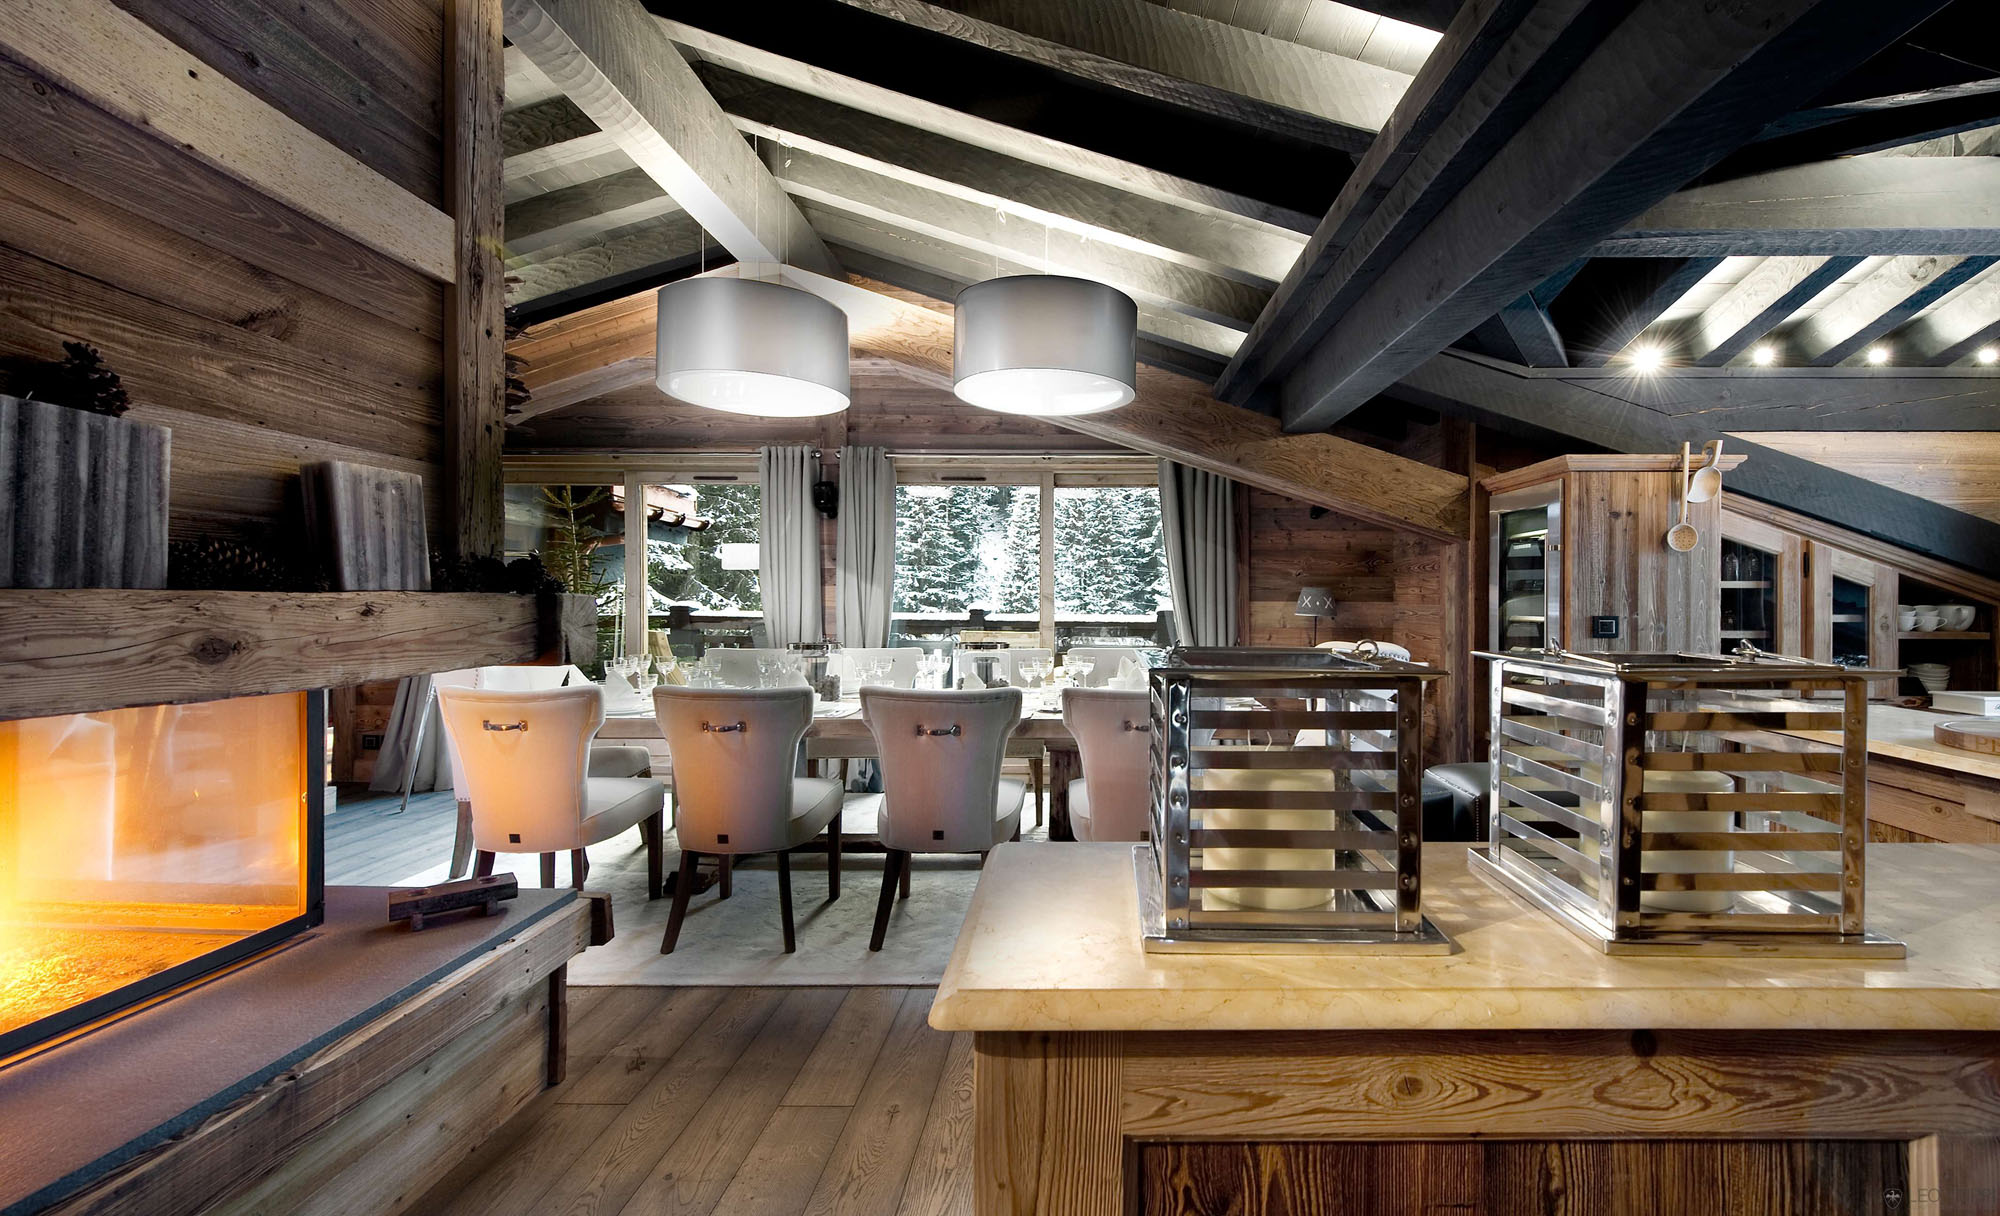 The petit chateau a luxury ski chalet in courchevel - Chalet modern design ...